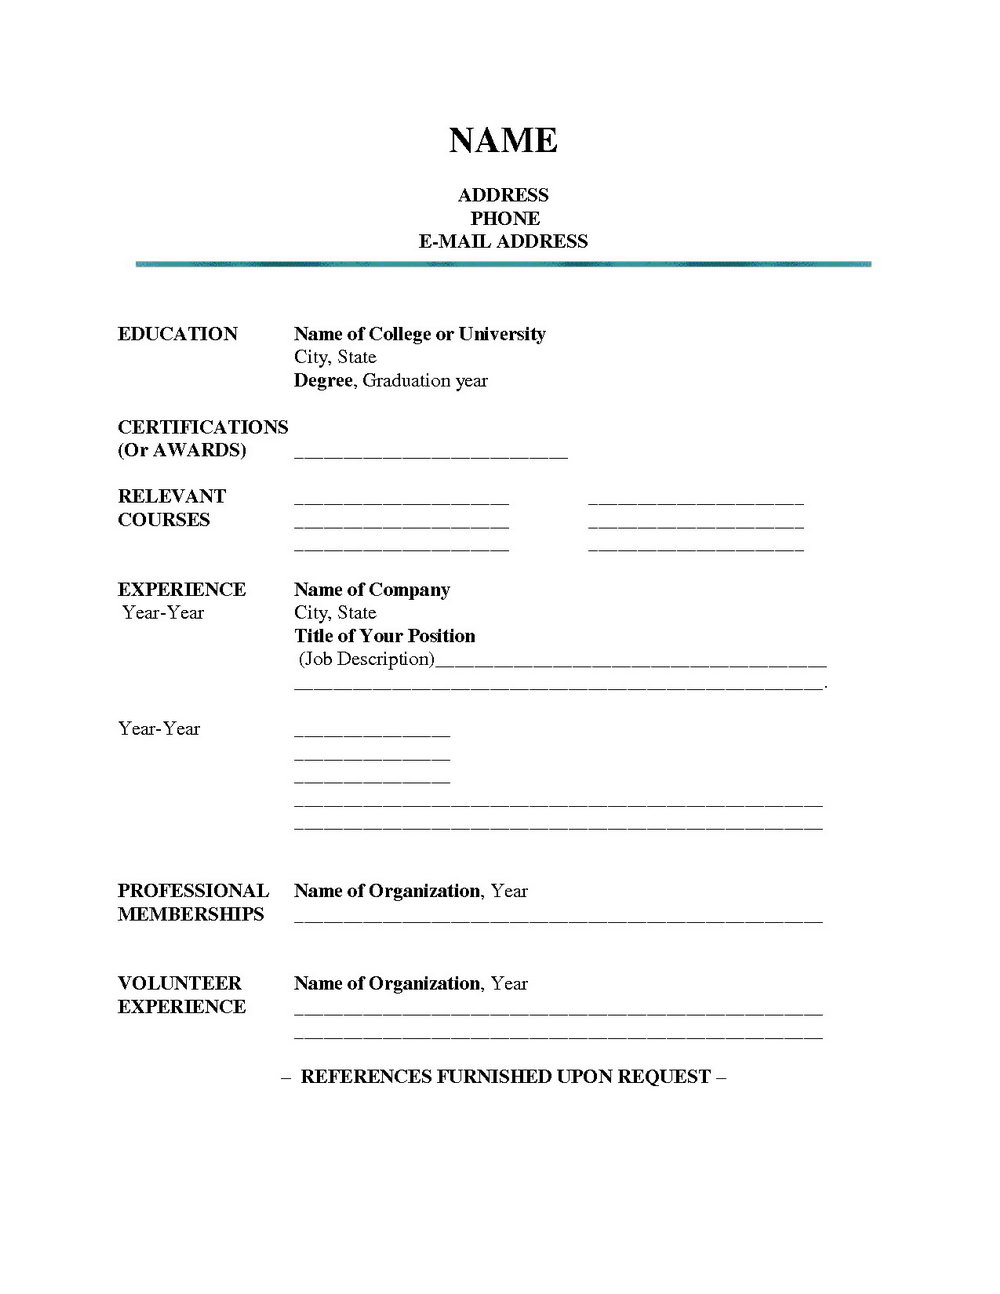 Professional Resume Template Doc Free Download